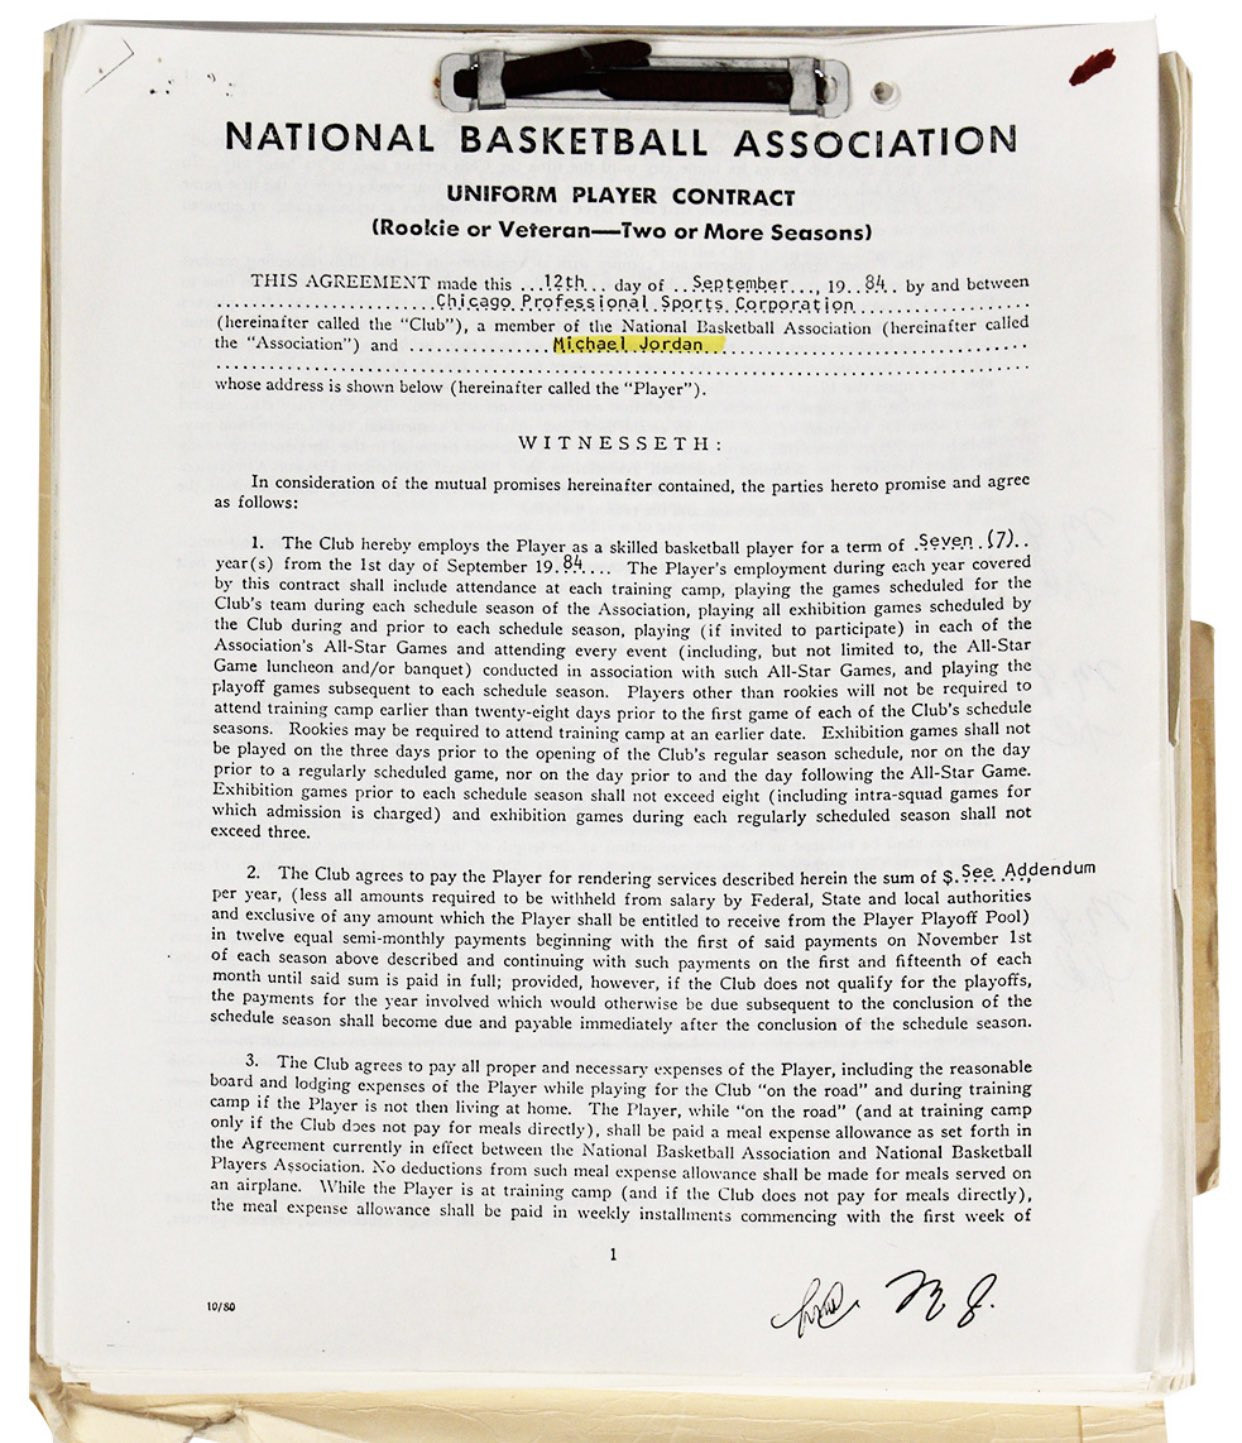 A photocopy of Michael Jordan's first NBA contract with the Chicago Bulls has sold for more than $50,000 at an auction organised by GottaHaveRockandRoll.com ©GottaHaveRockandRoll.com